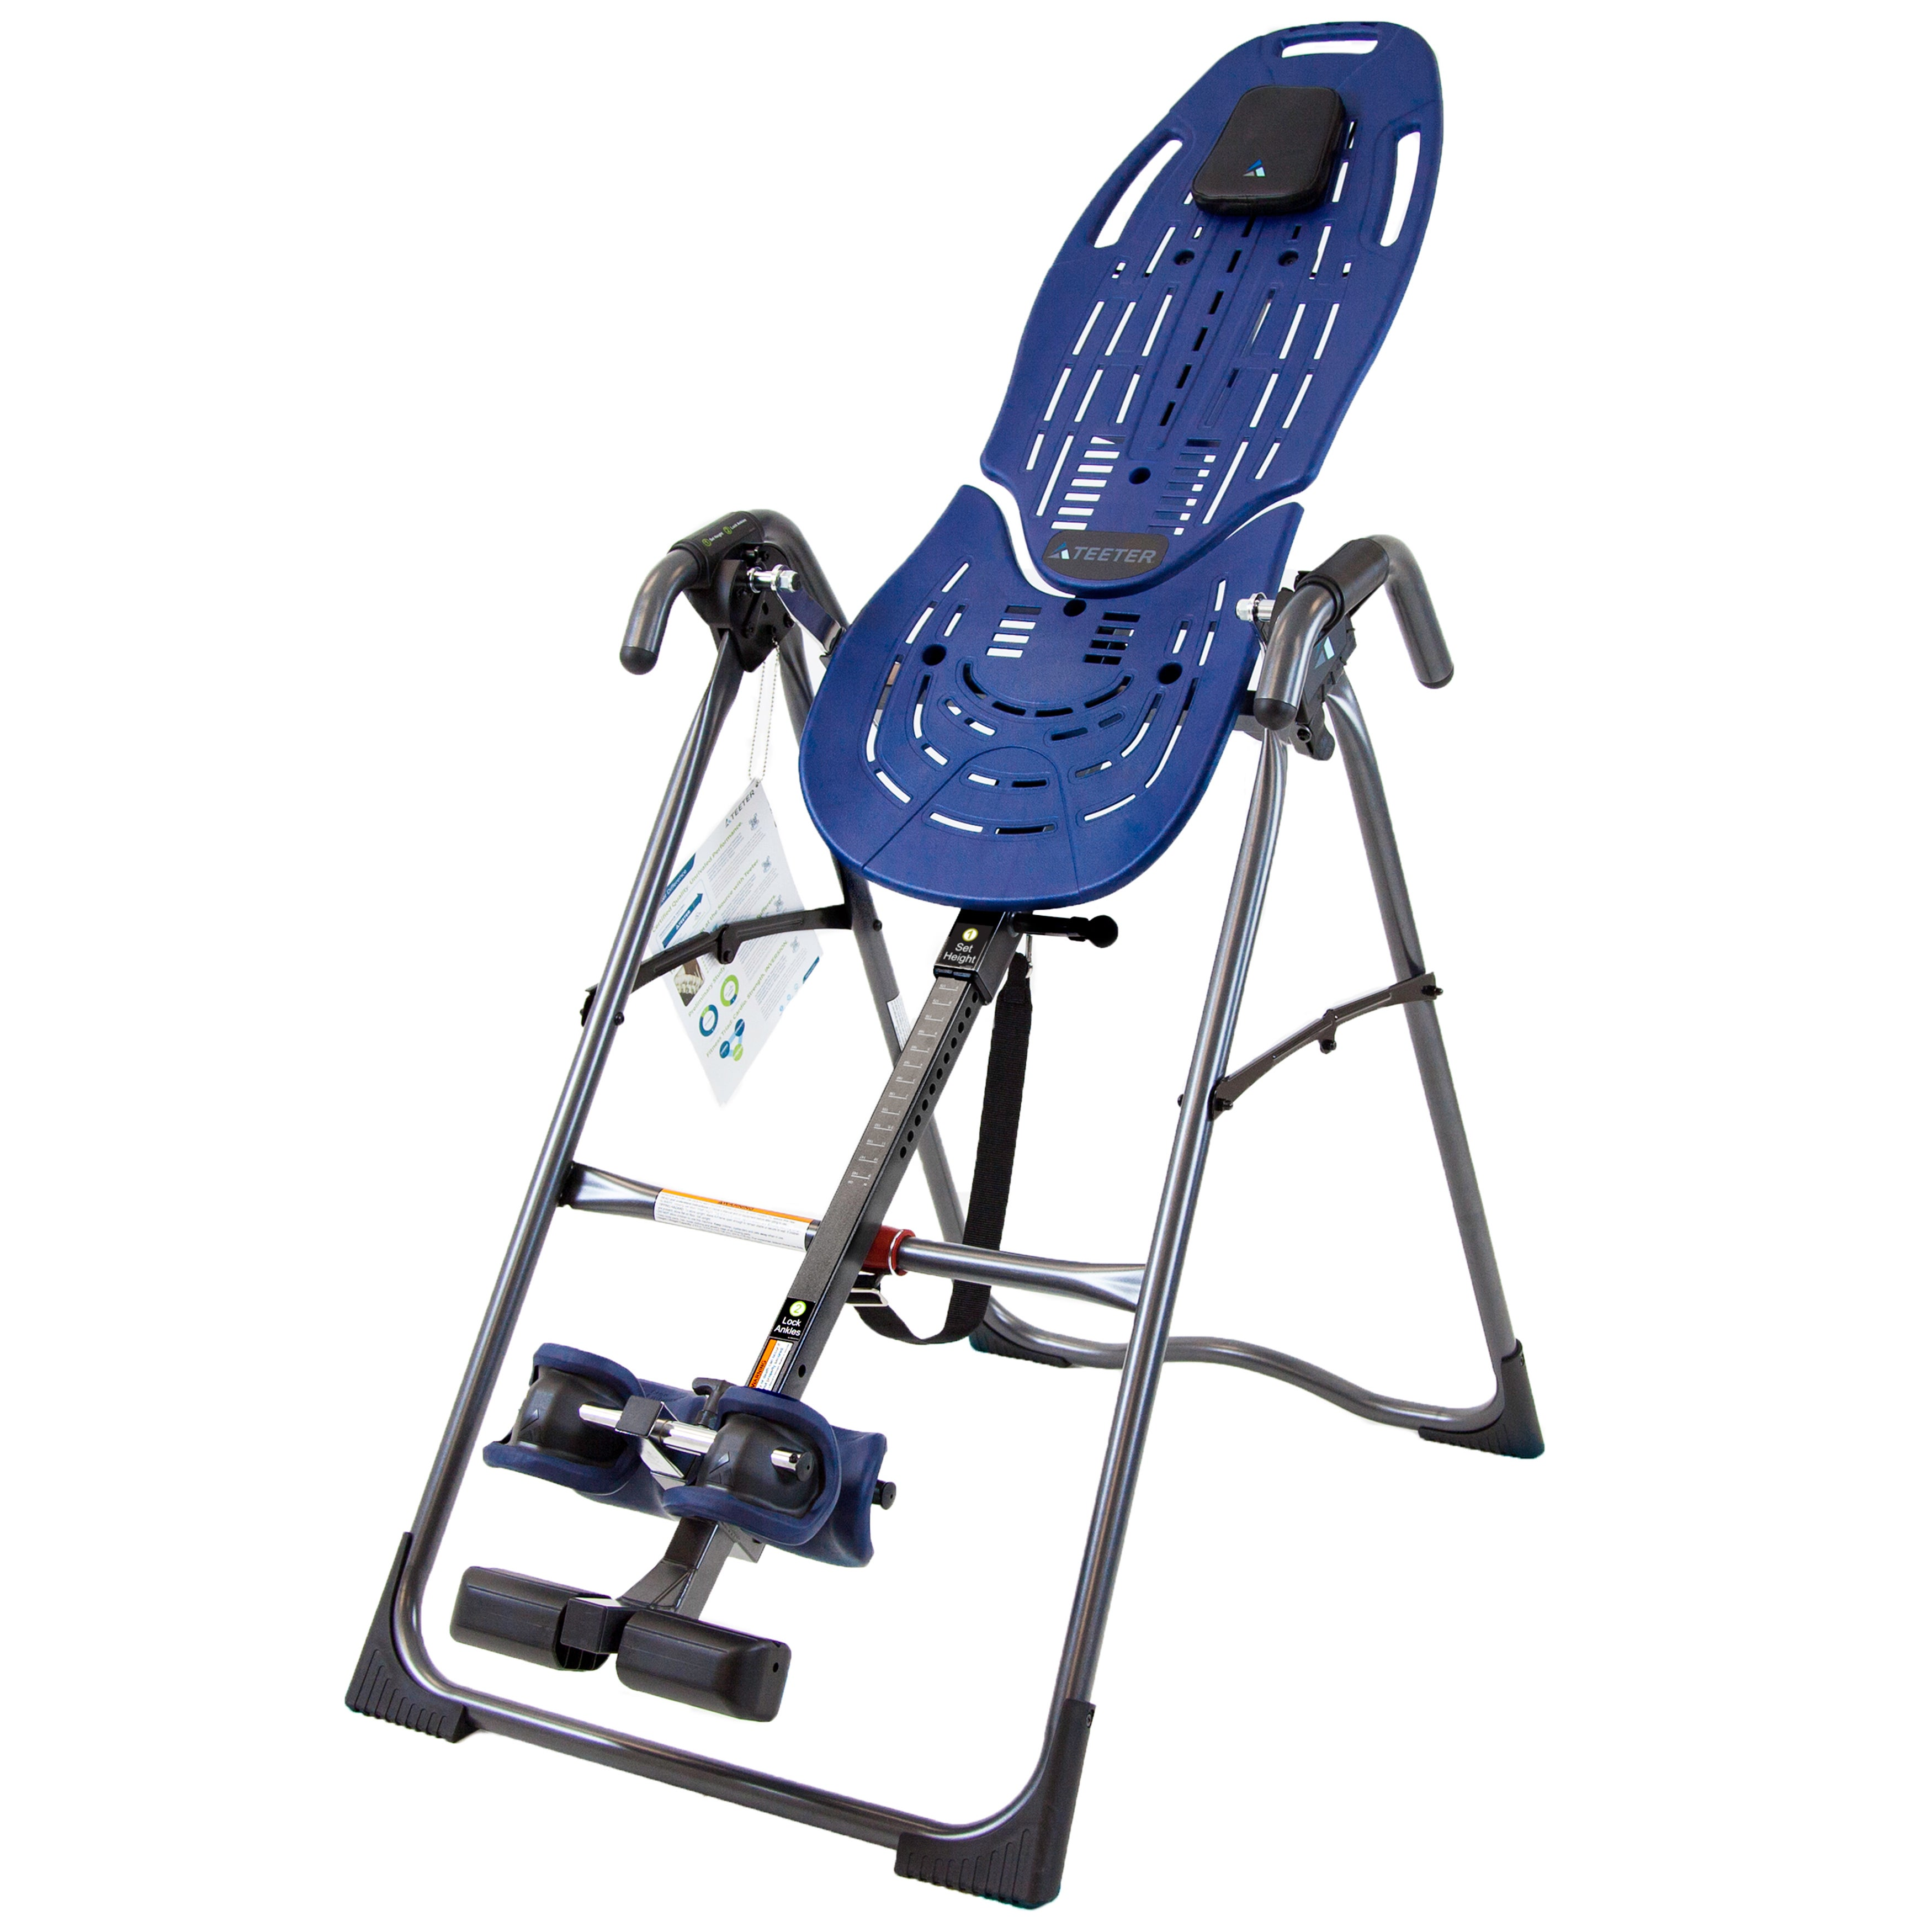 Teeter hang Ups EP-560 Inversion Table with Back Pain Rel...